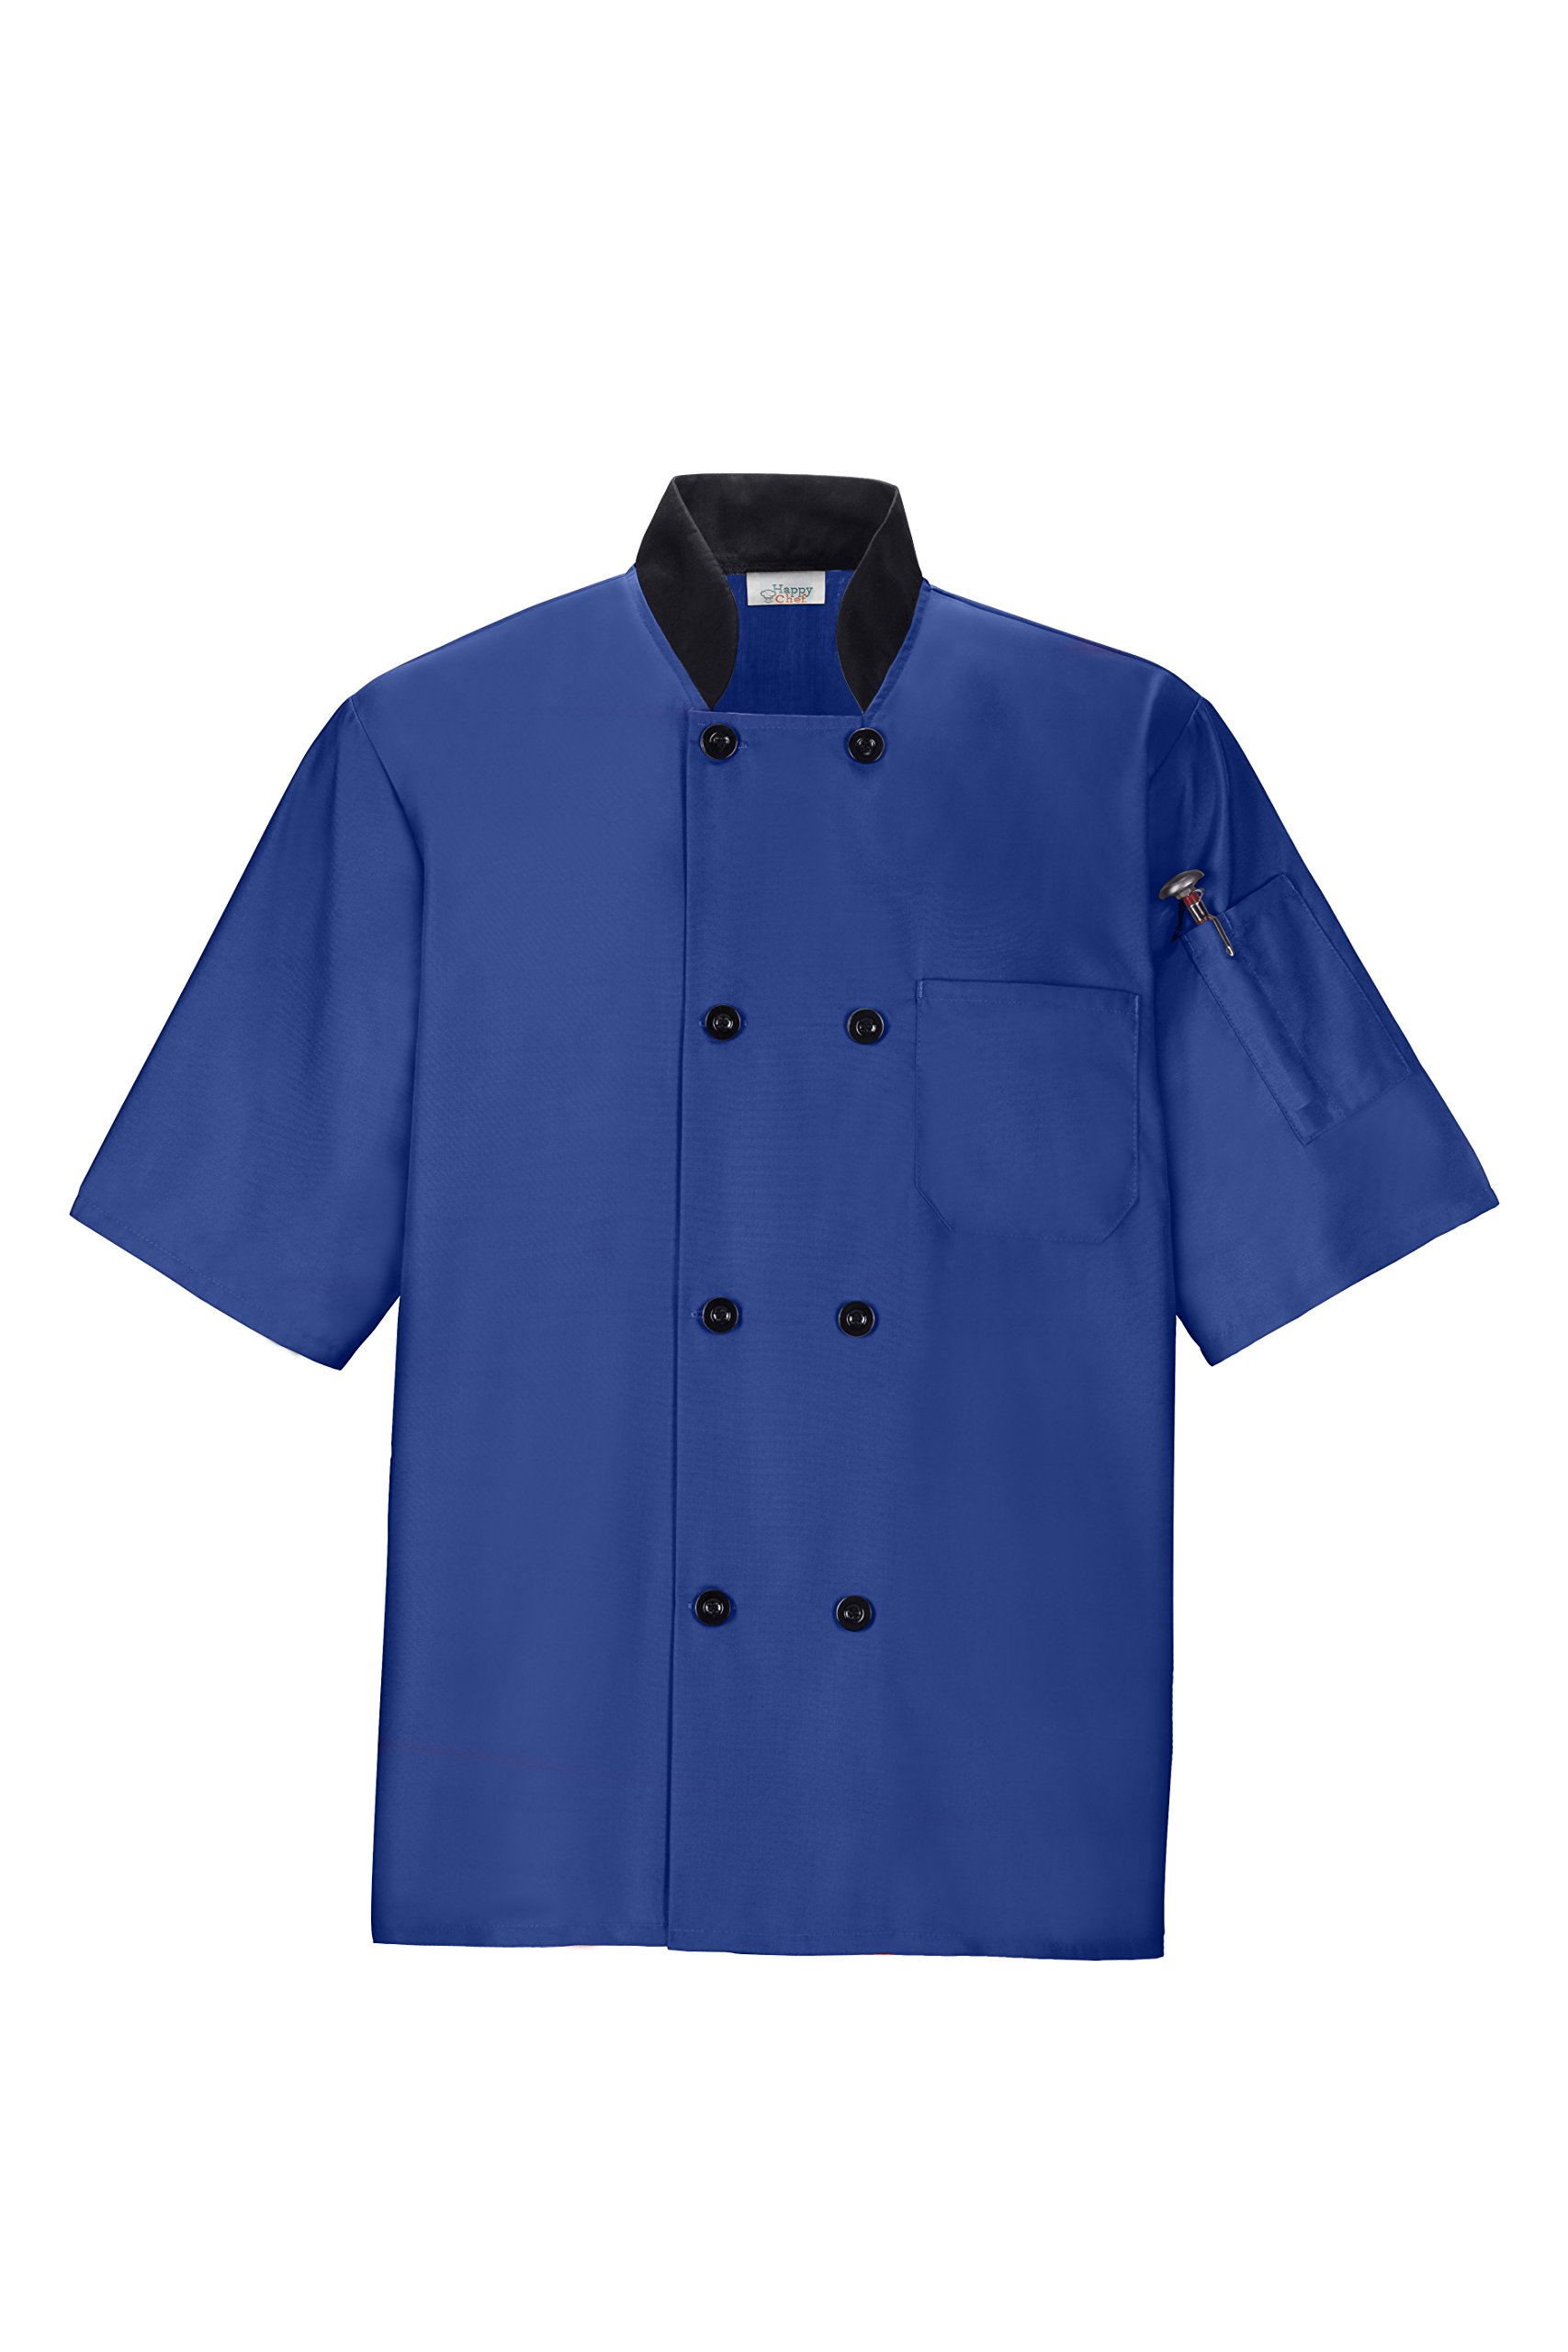 Happy Chef Lightweight Chef Coat (Large, Royal Blue)